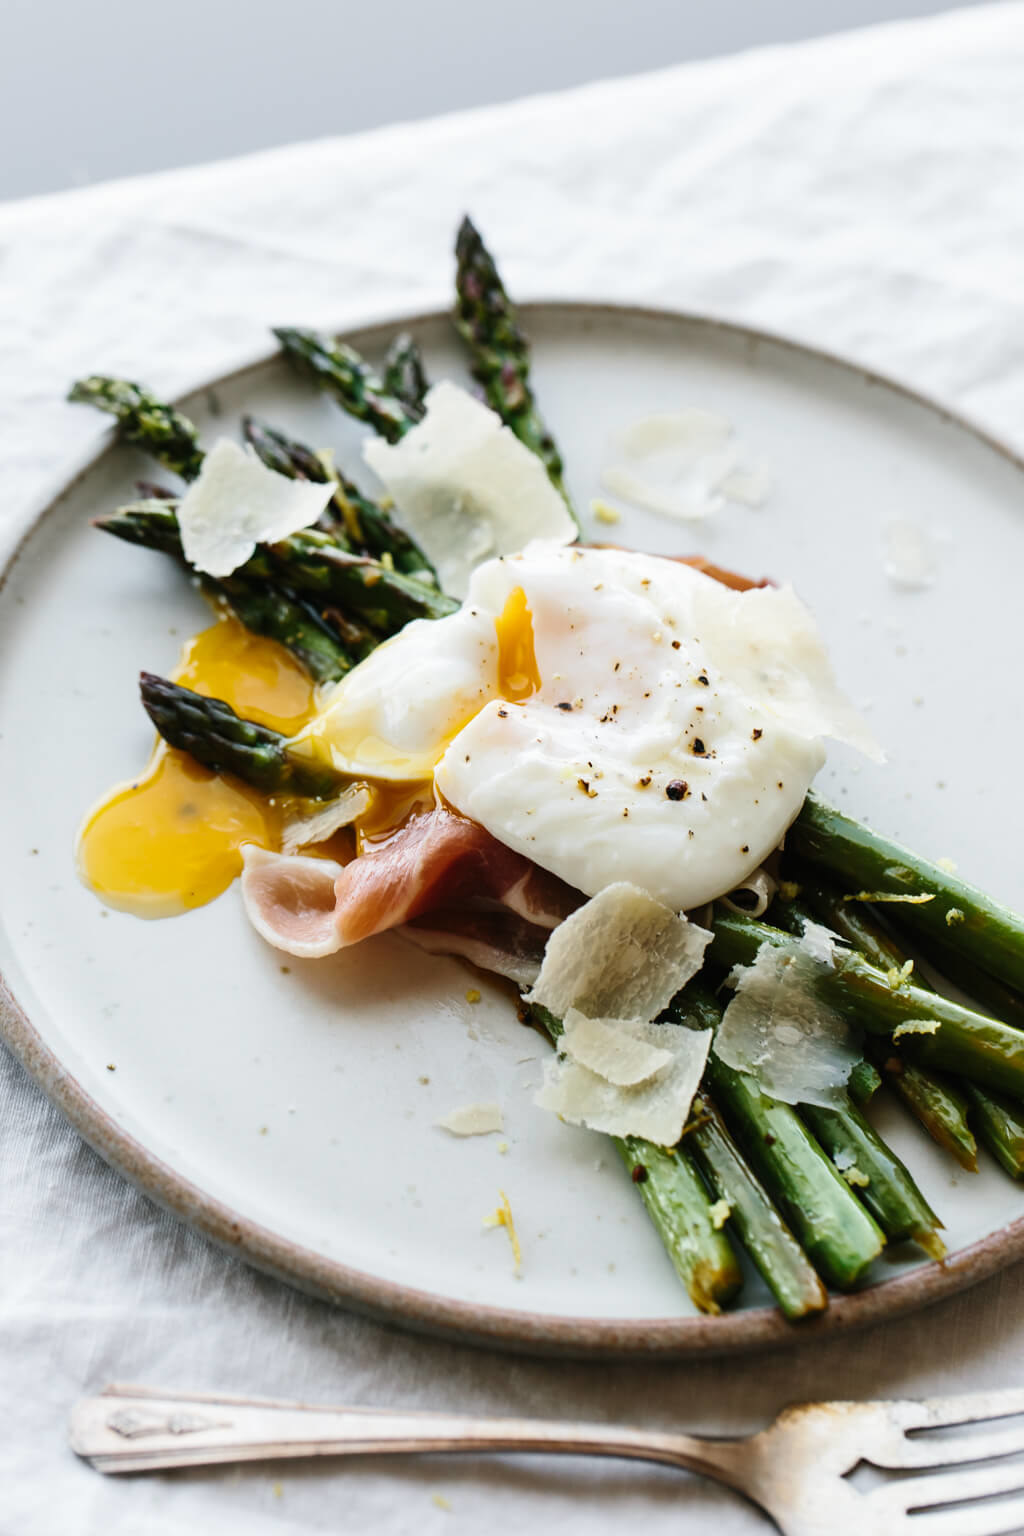 Grilled asparagus topped with prosciutto and a poached egg.